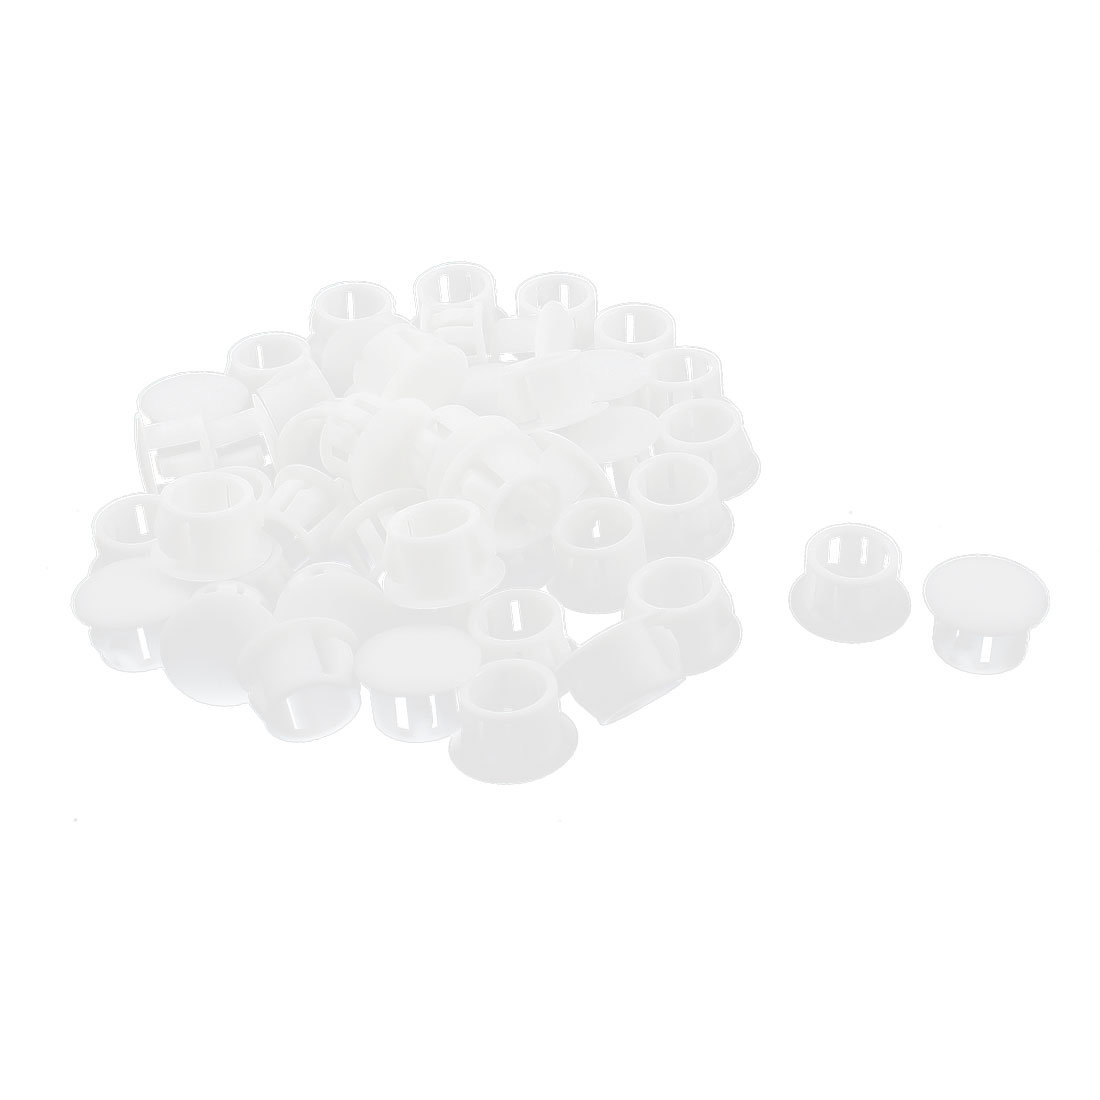 50Pcs SKT-13 Insulated White Plastic Snap in Mounting Locking Hole Plug Harness Fastener Cover 12.7mm Dia